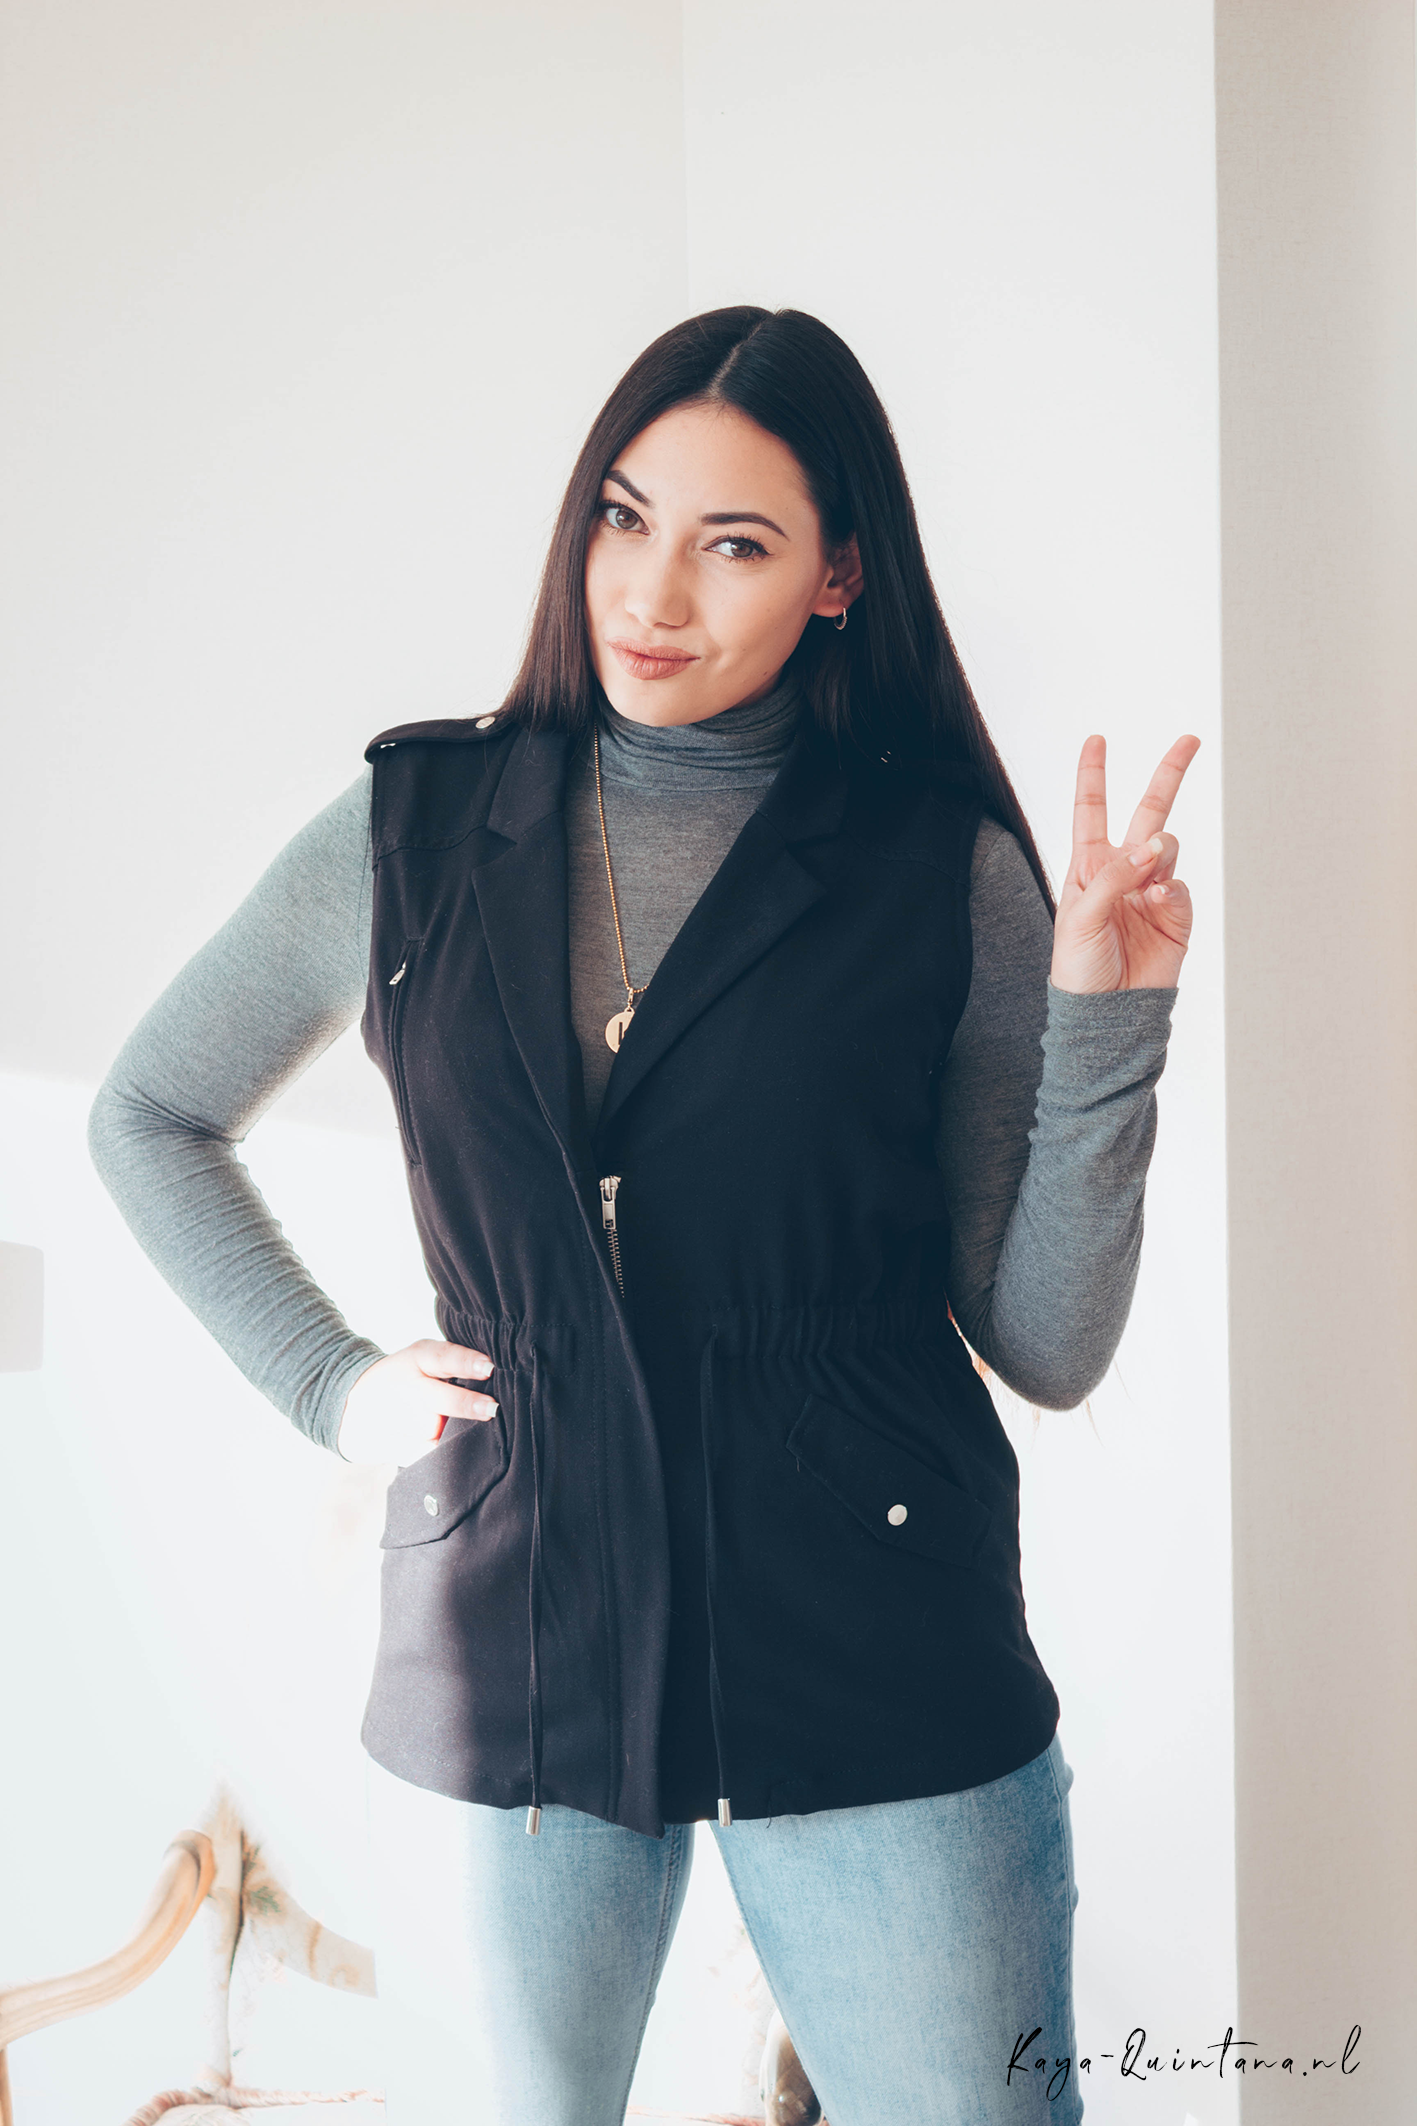 Winter outfits and style inspiration for 2020